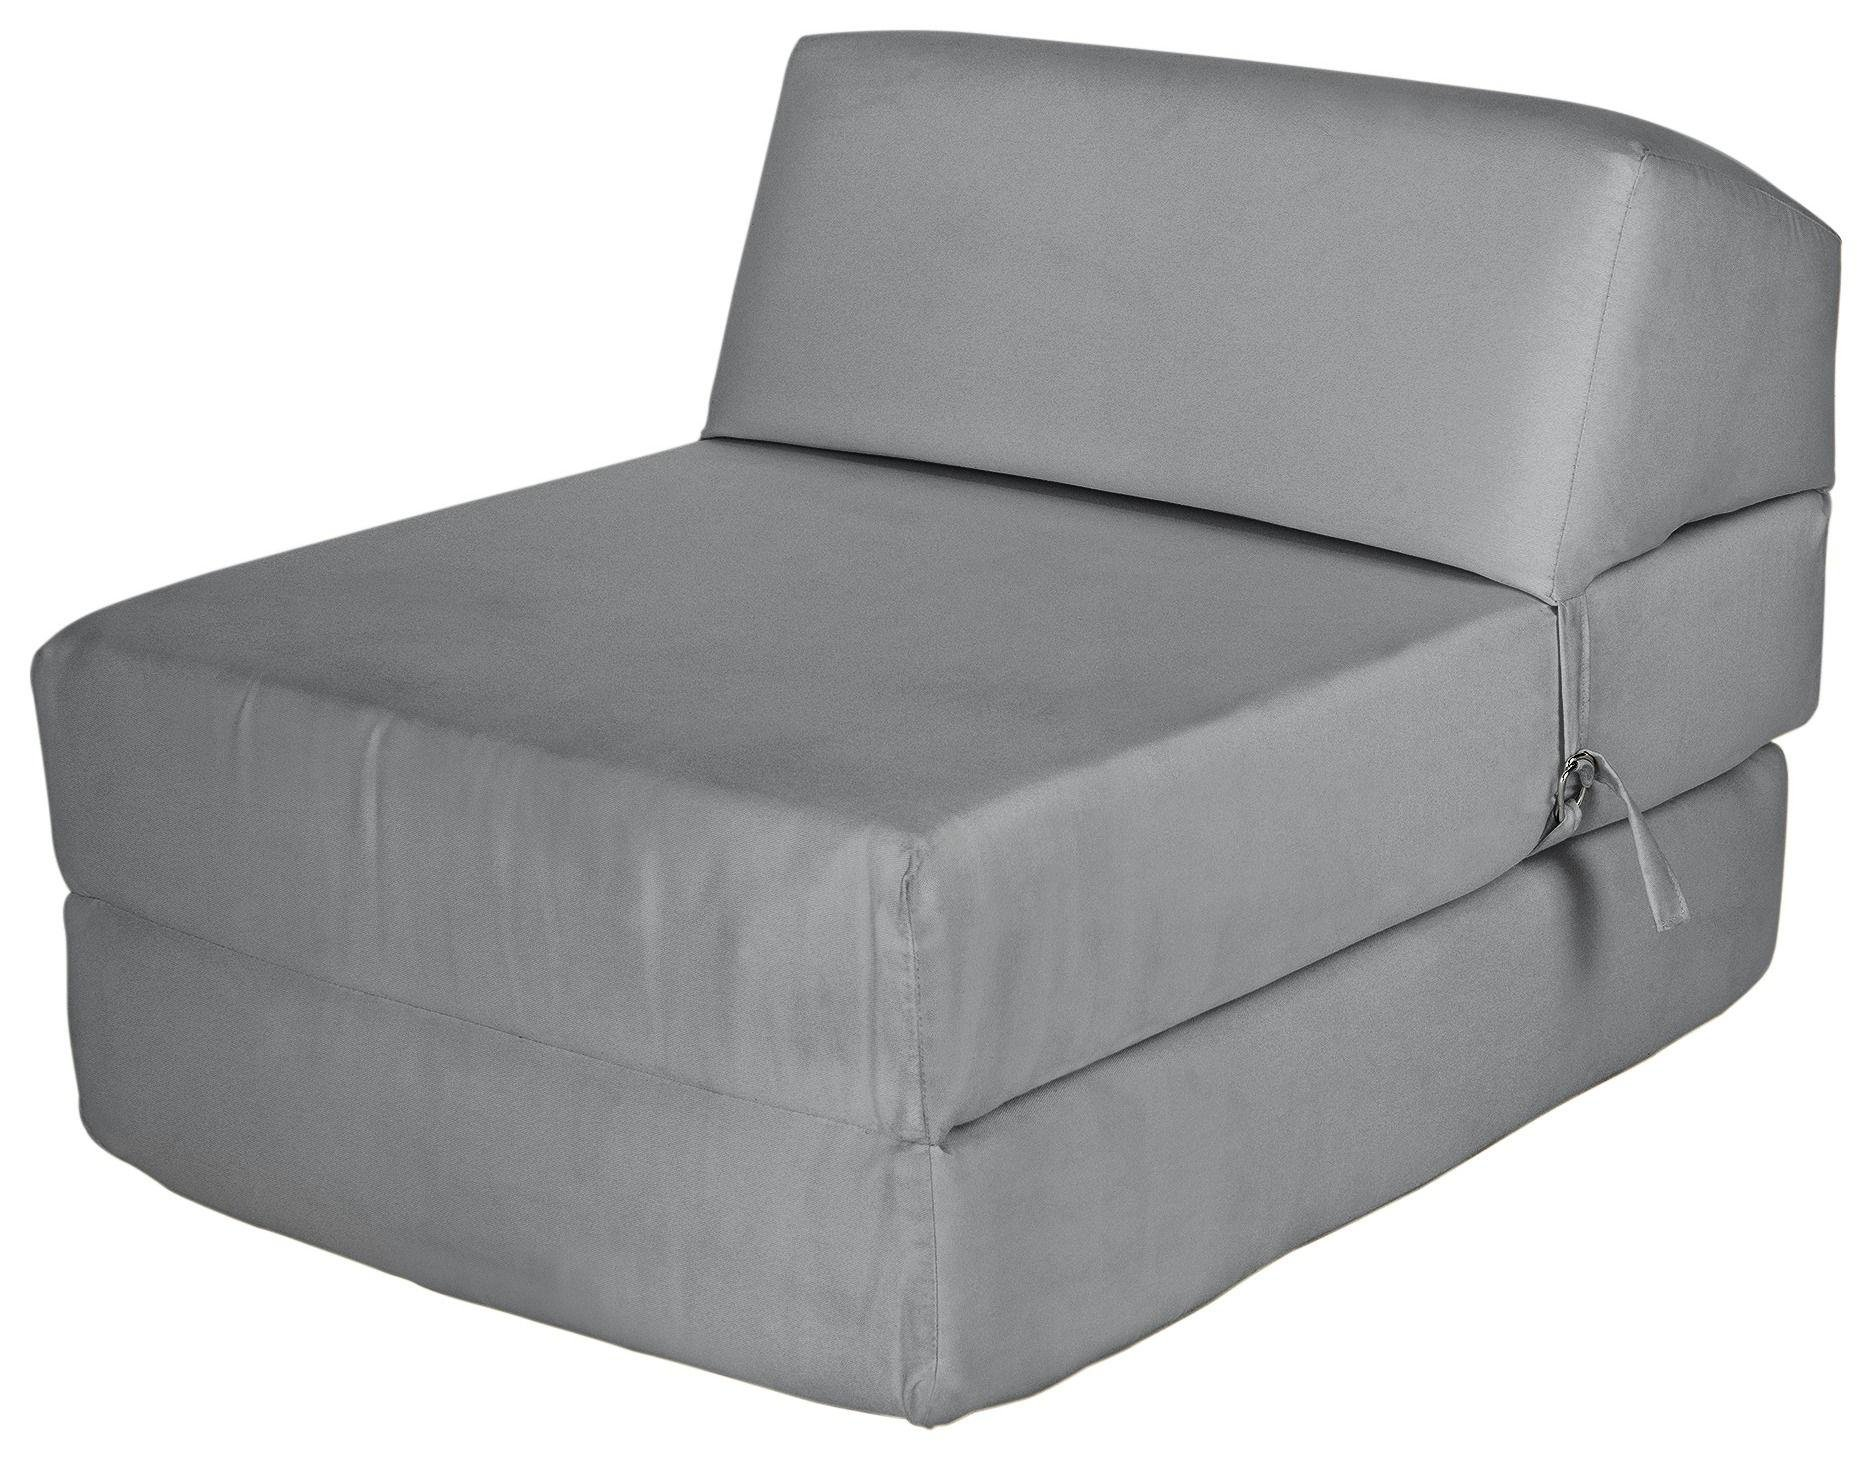 chair beds for adults yoga exercises sofa futons bed settees argos home single cotton chairbed flint grey